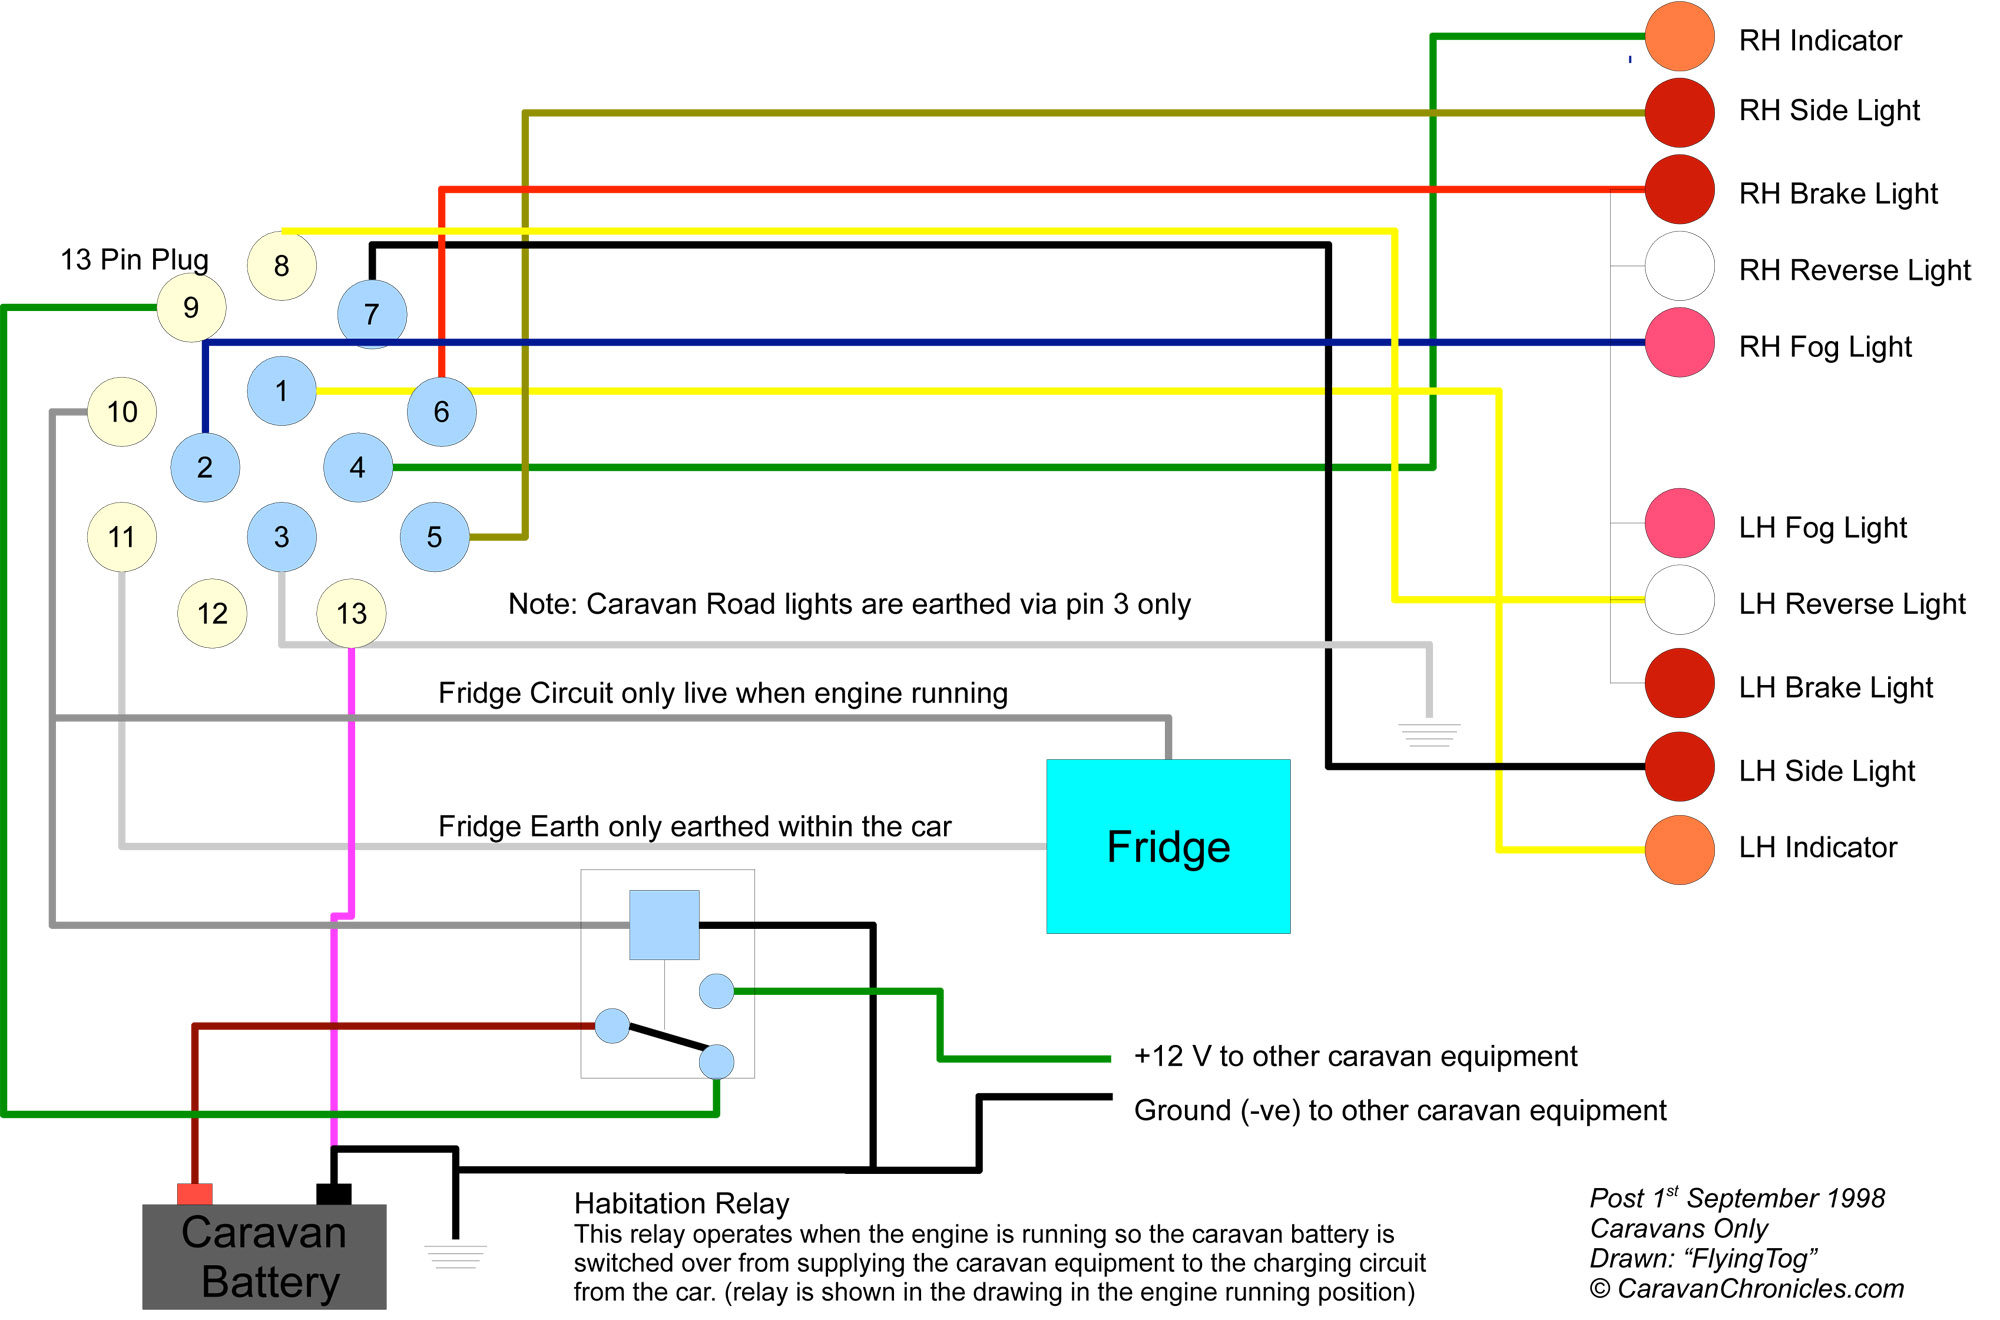 [SCHEMATICS_49CH]  CA6 7 Core Trailer Wiring Diagram | Wiring Library | 7 Way Trailer Ke Wiring Diagram |  | Wiring Library